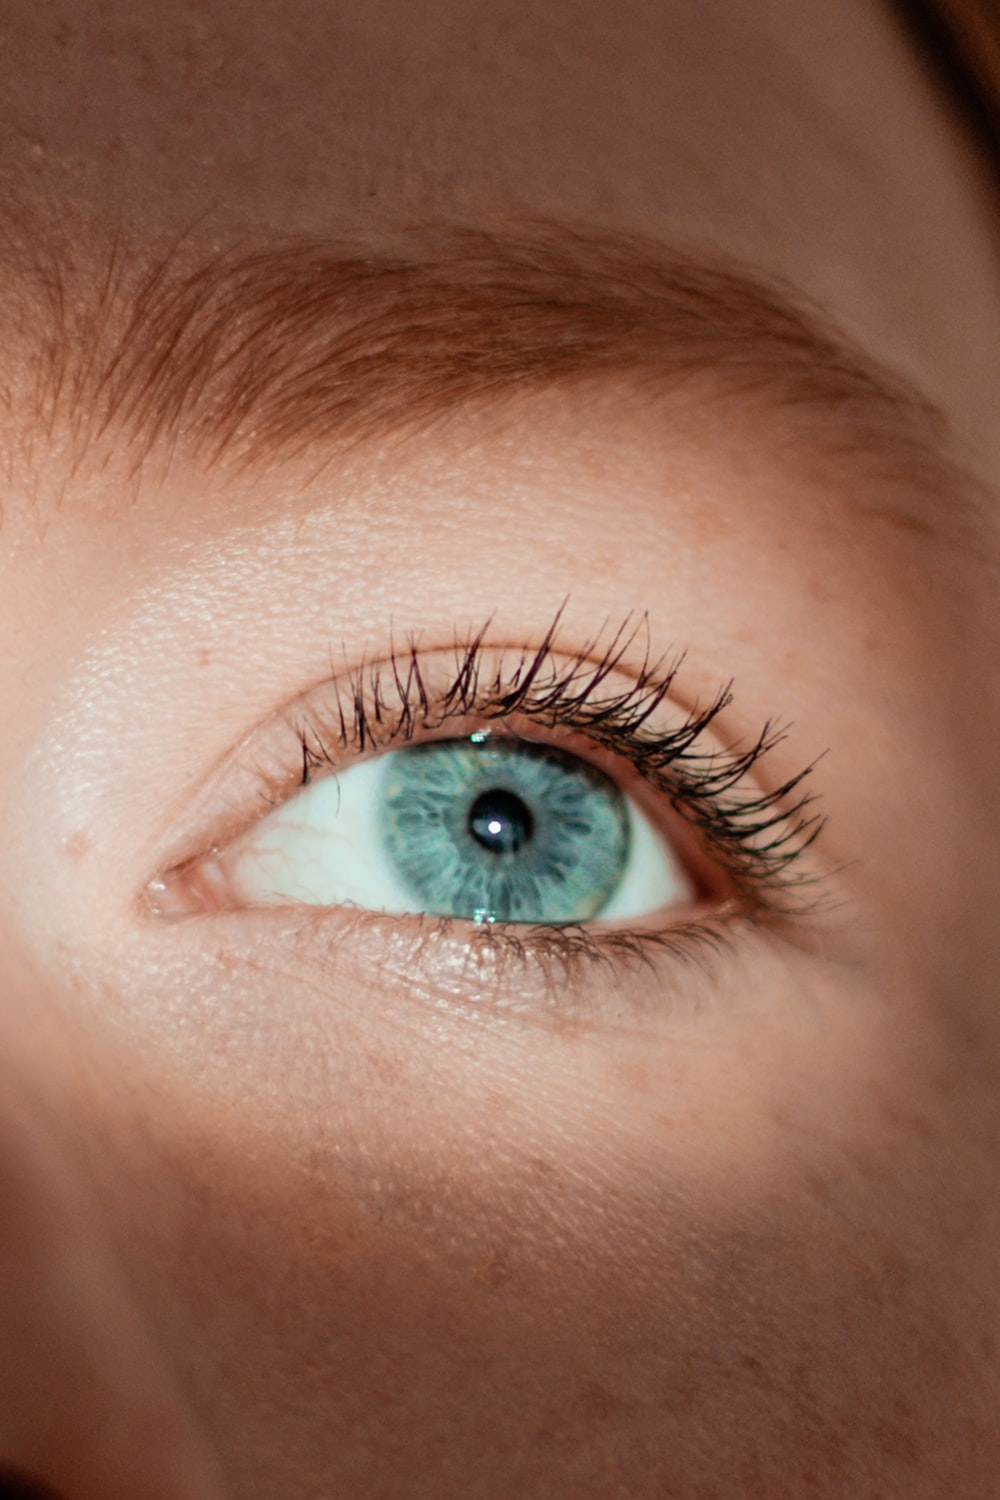 persons green eye in close up photography